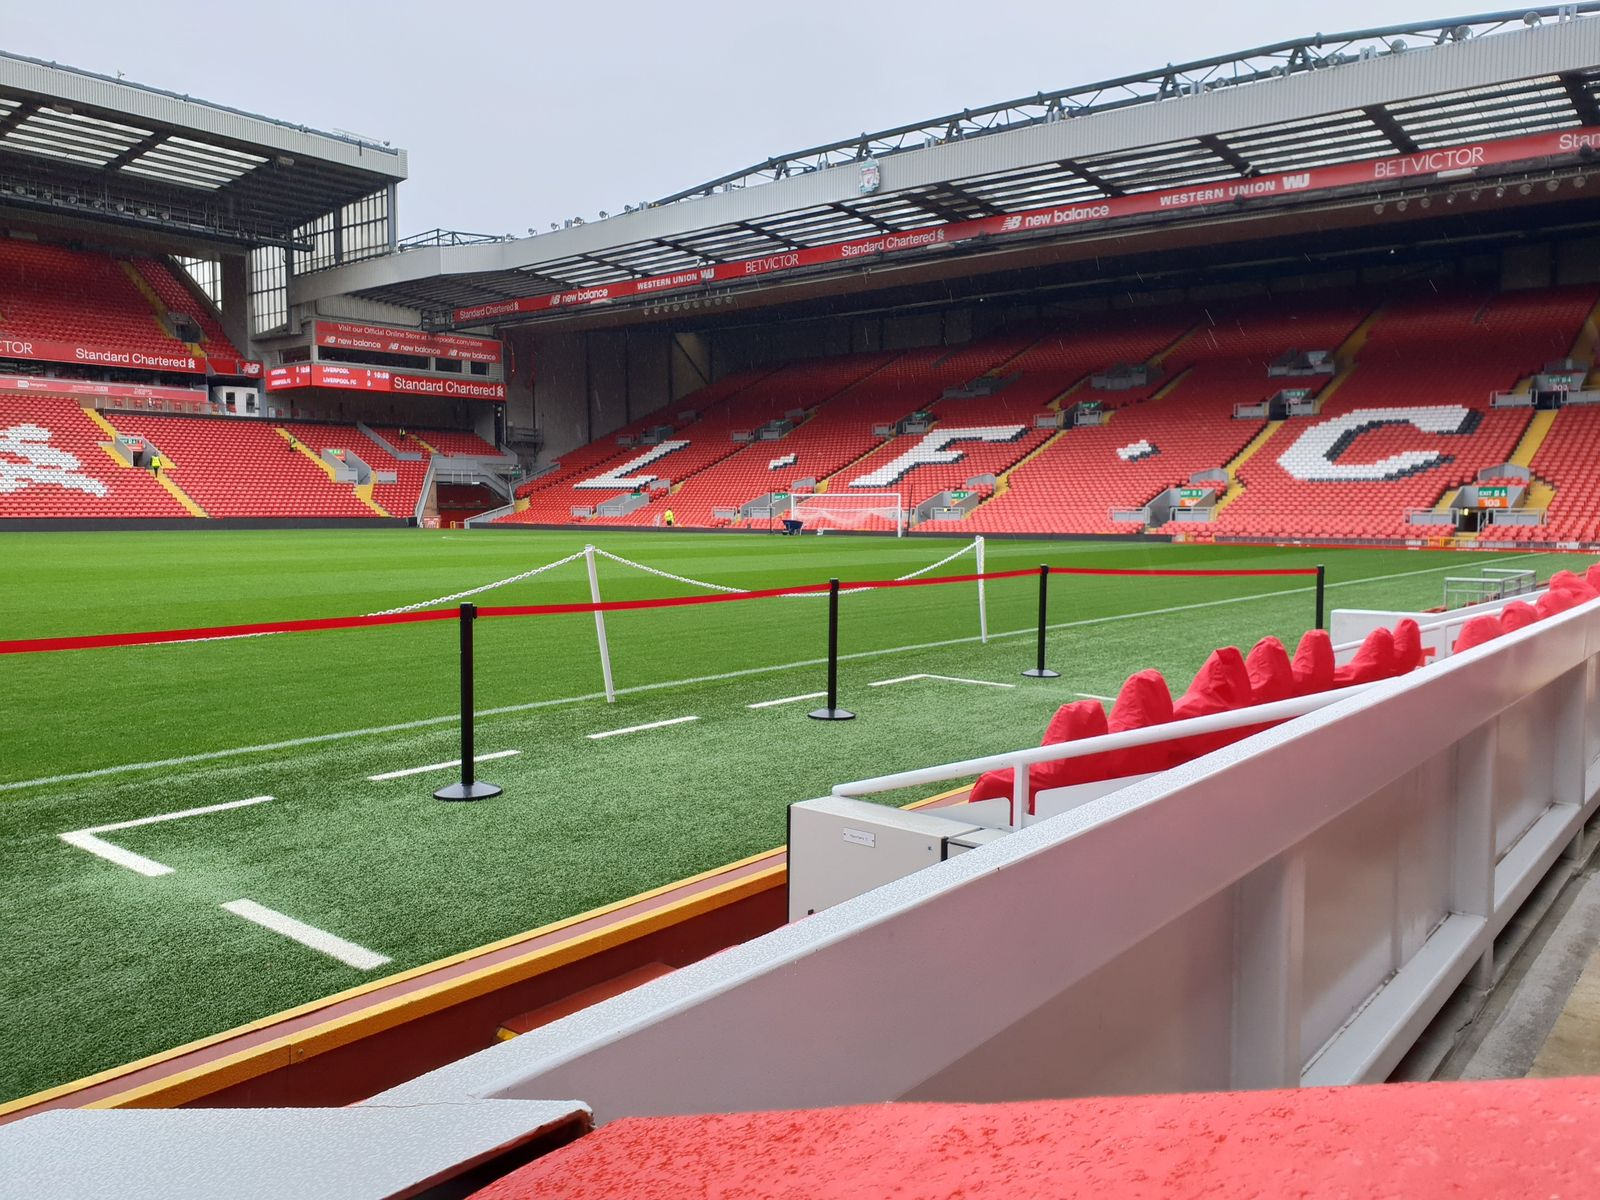 The Ball in Anfield